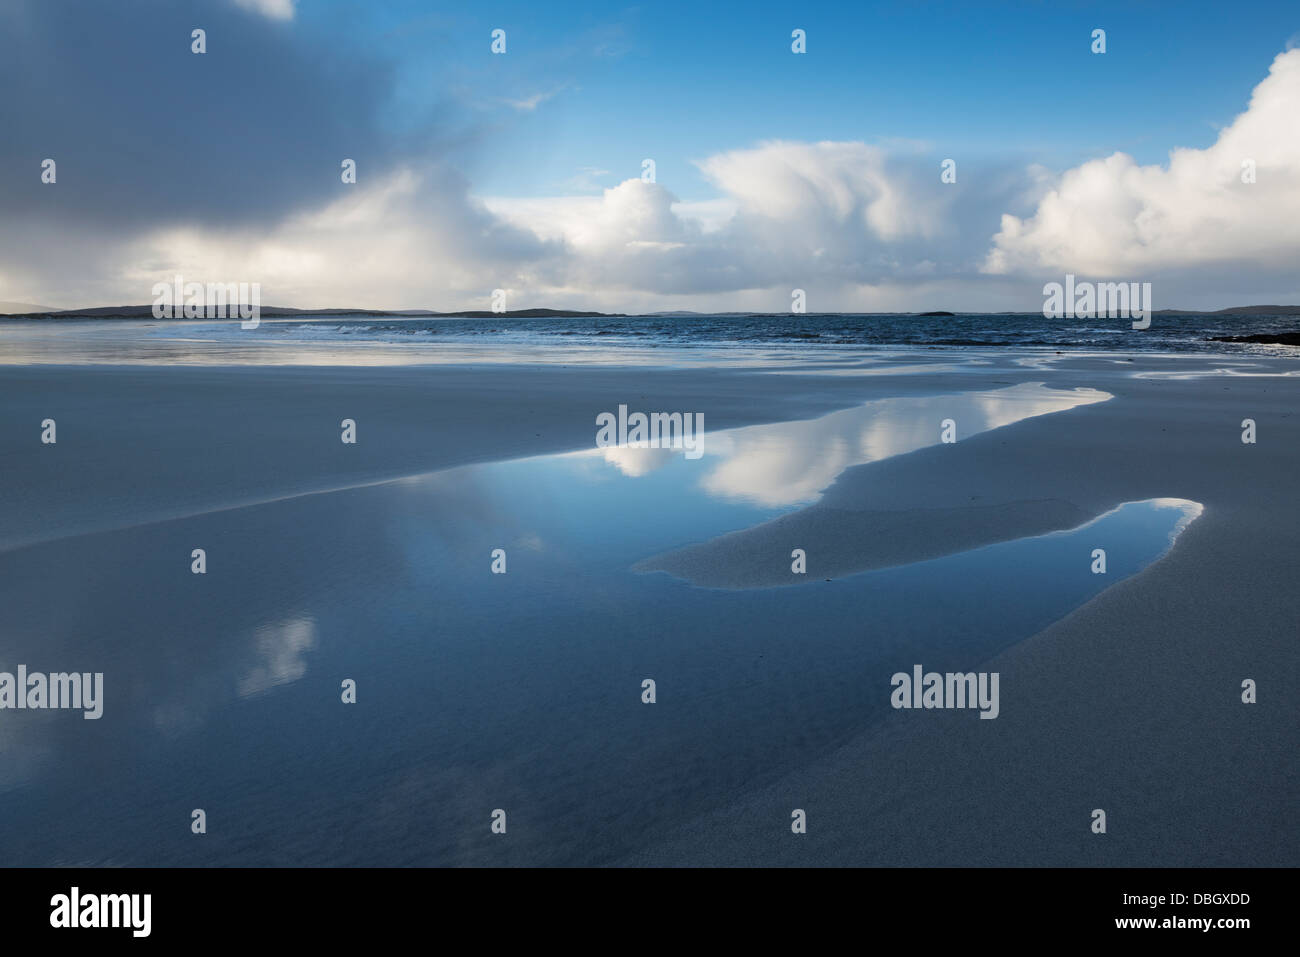 Traigh Hornais beach, North Uist, Outer Hebrides, Scotland - Stock Image